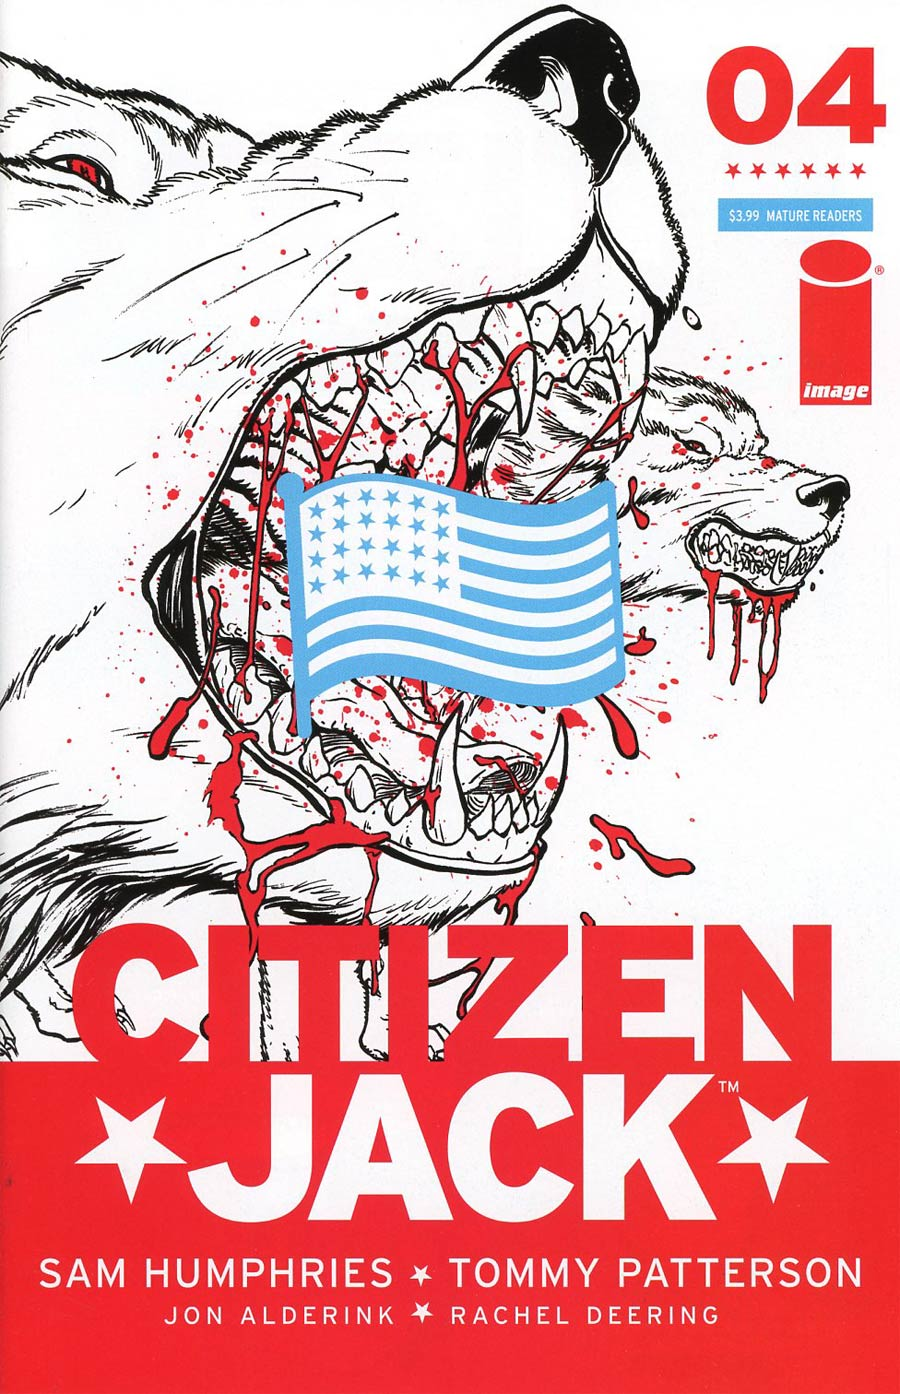 Citizen Jack #4 Cover A Tommy Patterson & Dylan Todd